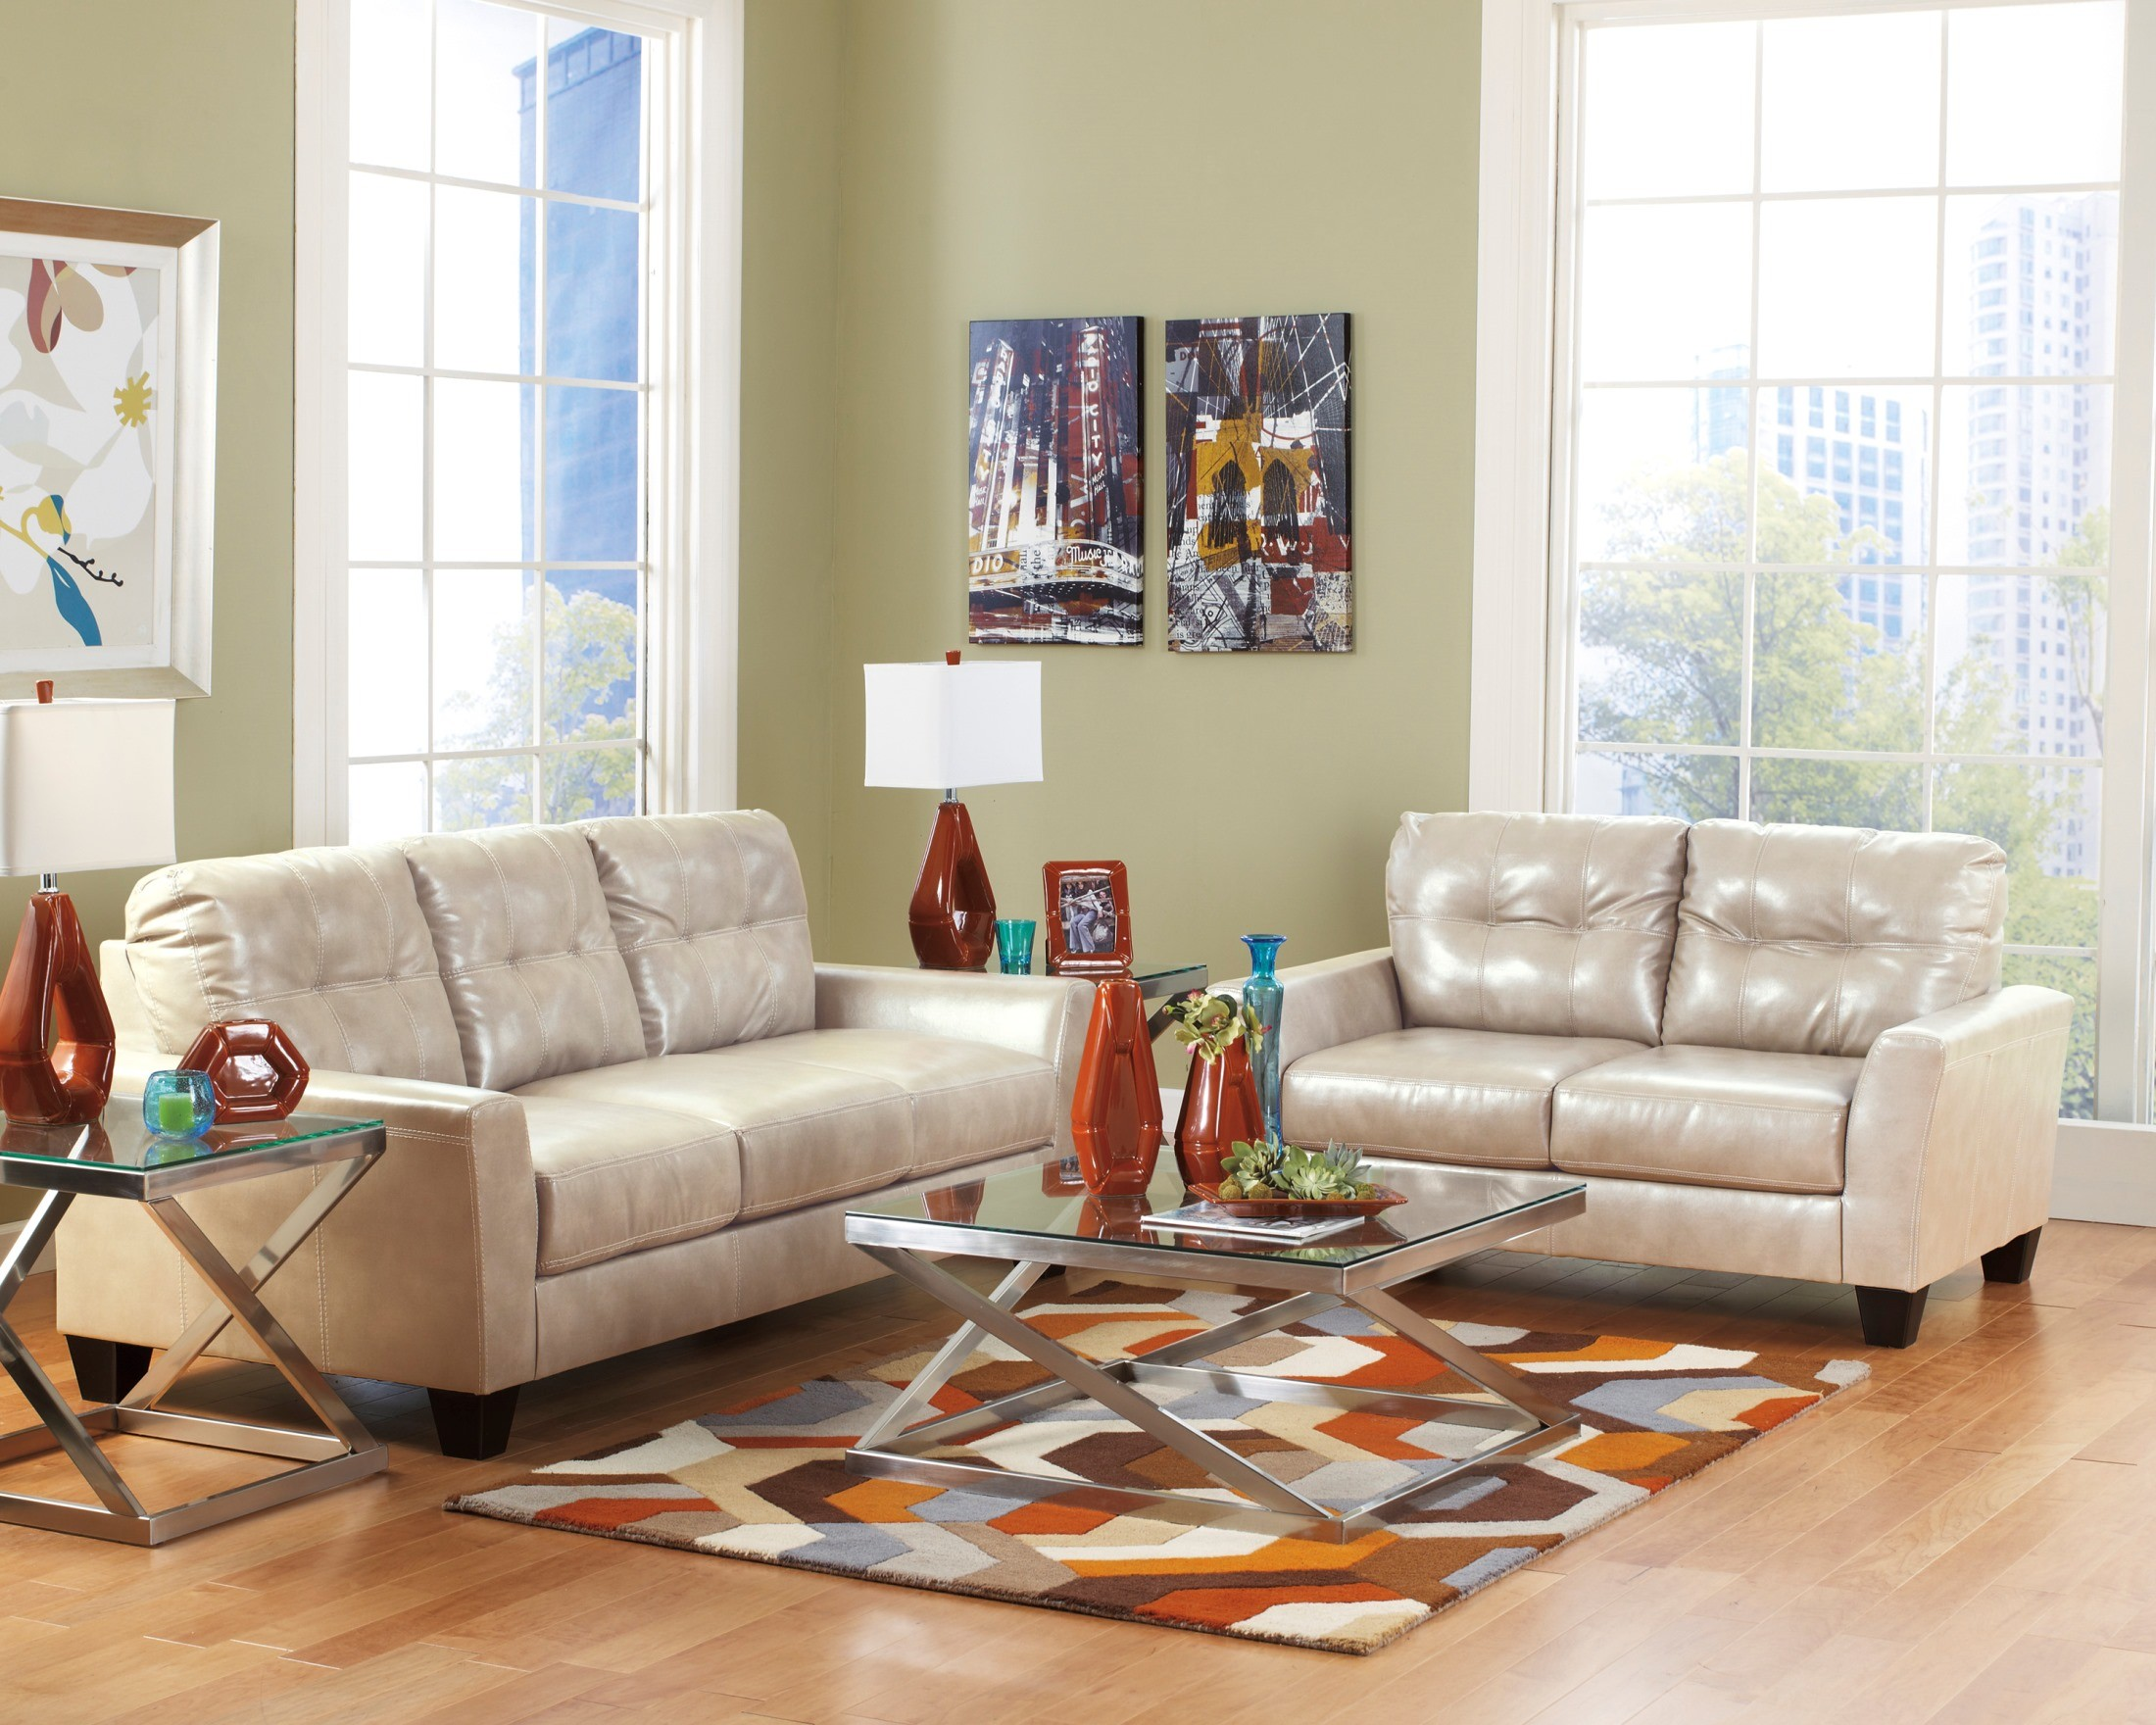 Paulie DuraBlend Taupe Living Room Set From Ashley 27000 38 35 Coleman Fu